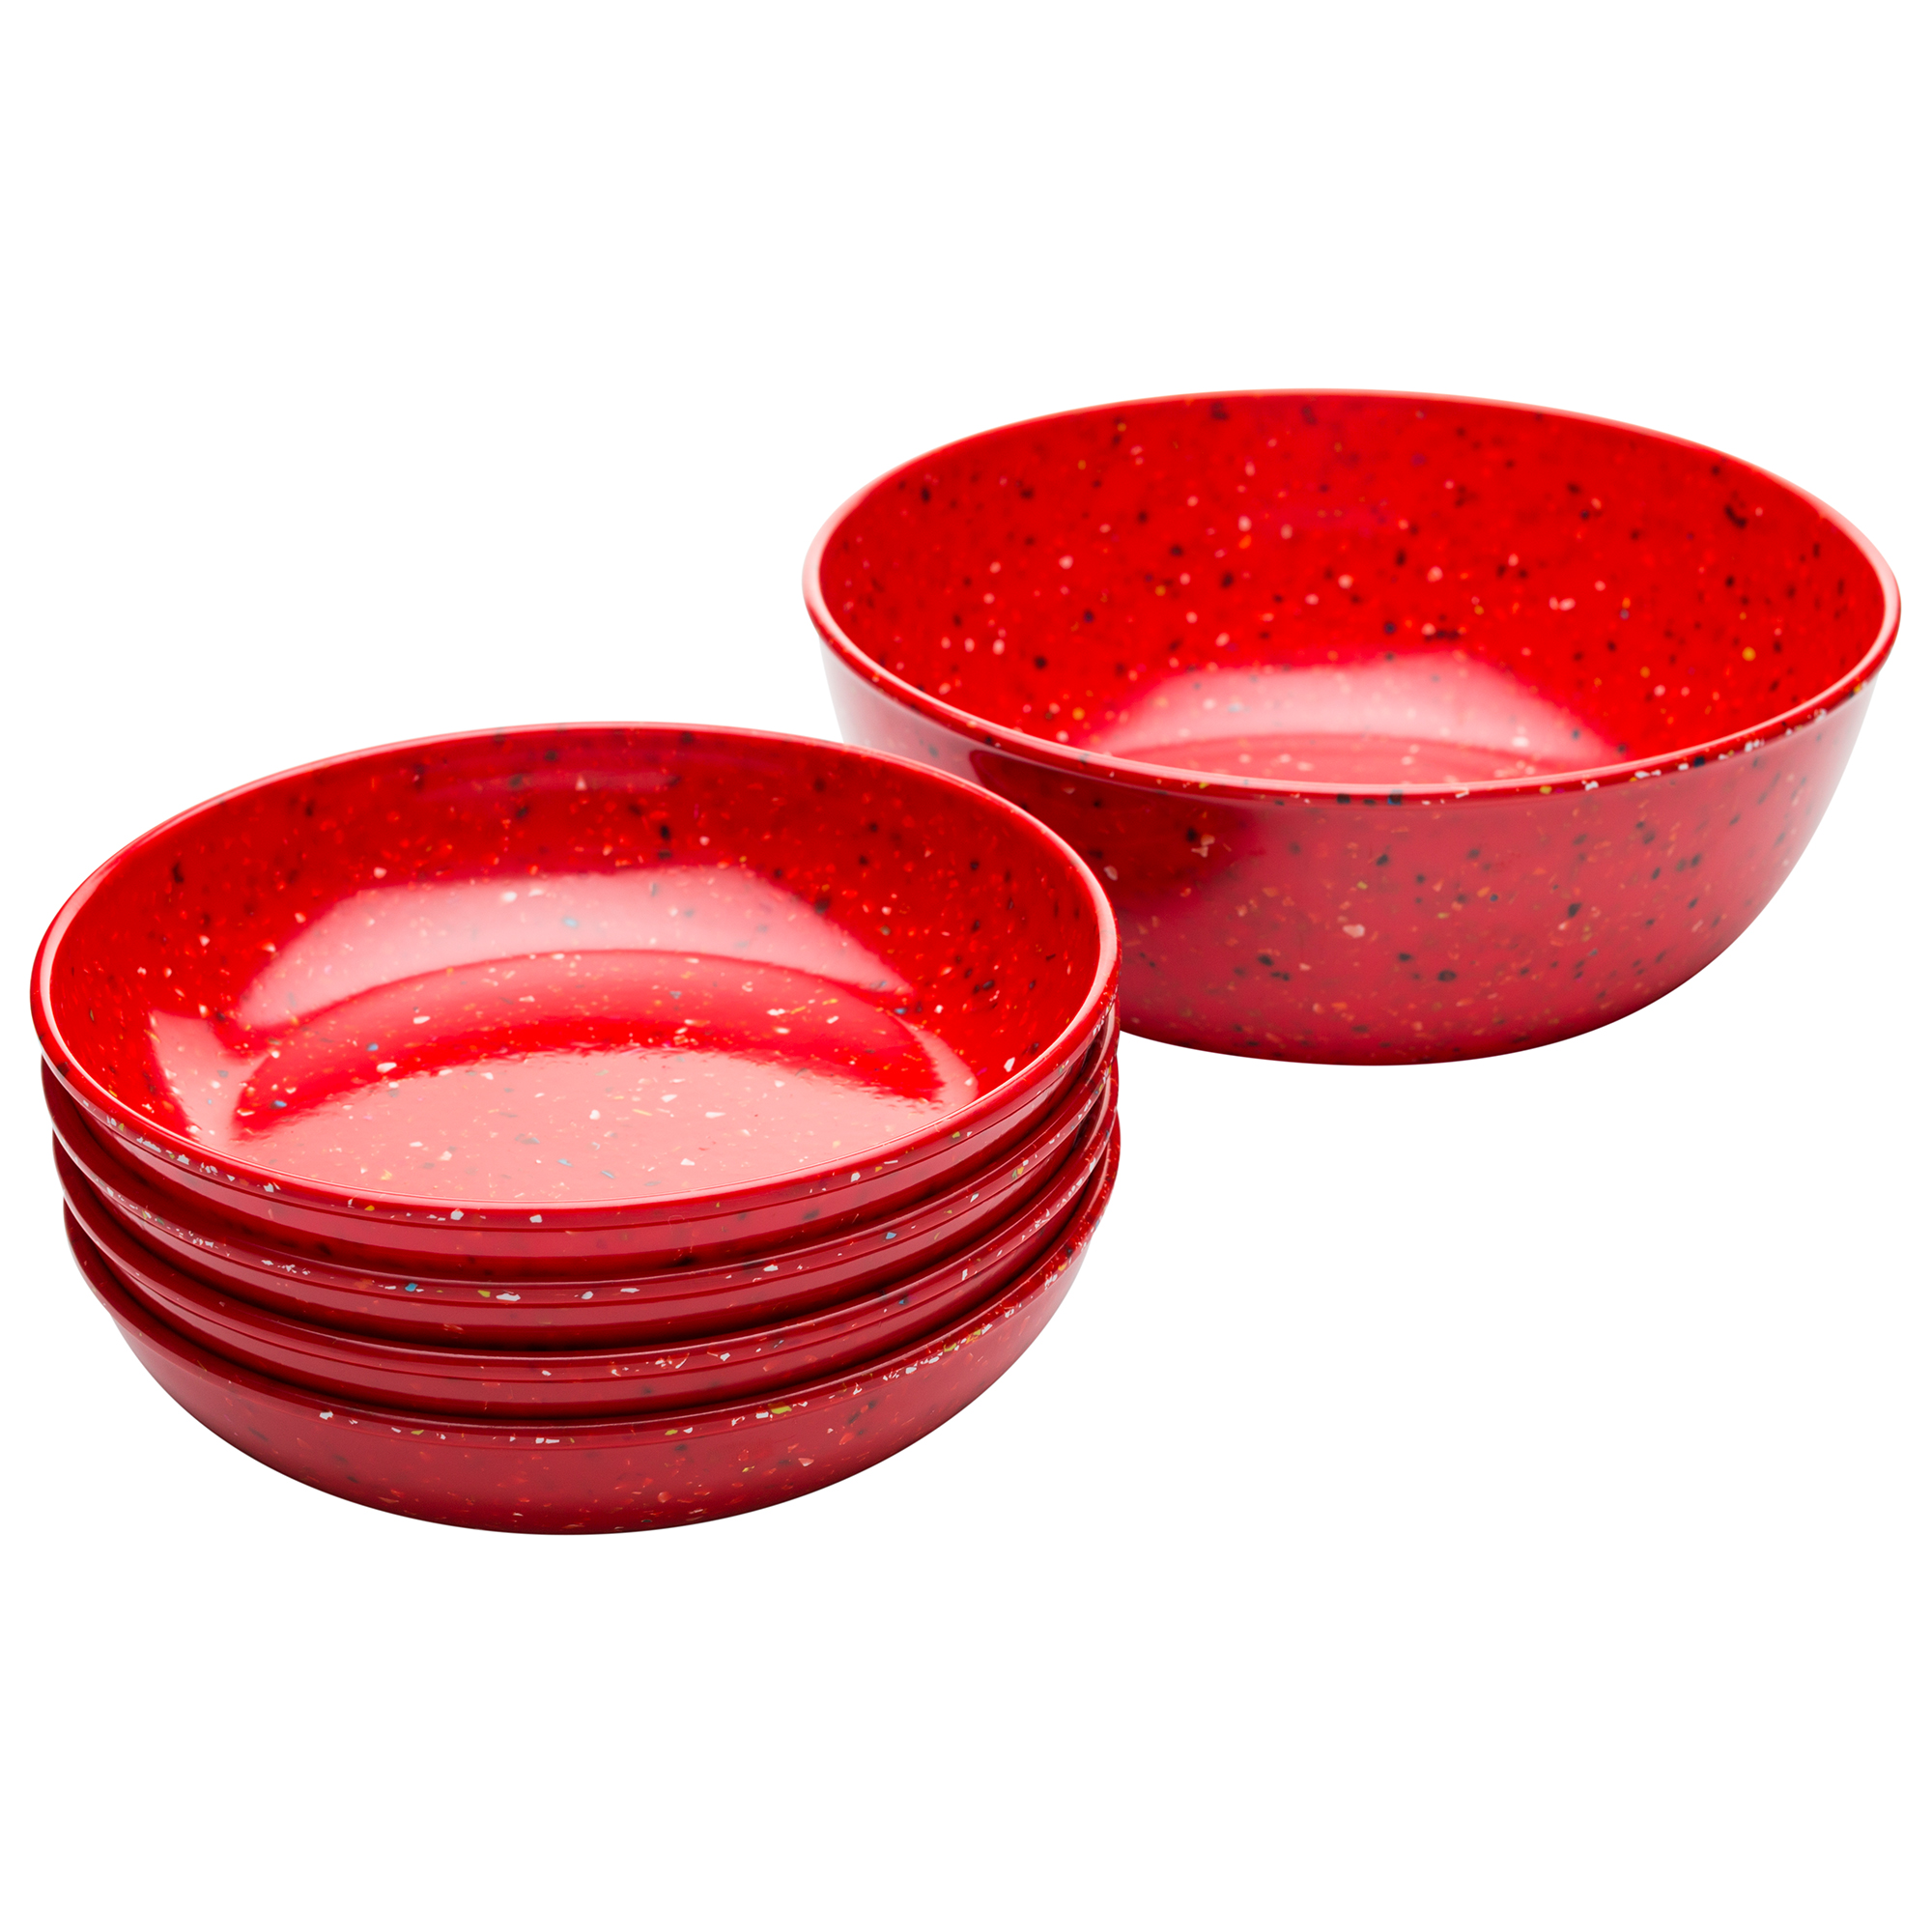 Confetti Pasta Bowl Set, Red, 5-piece set slideshow image 1